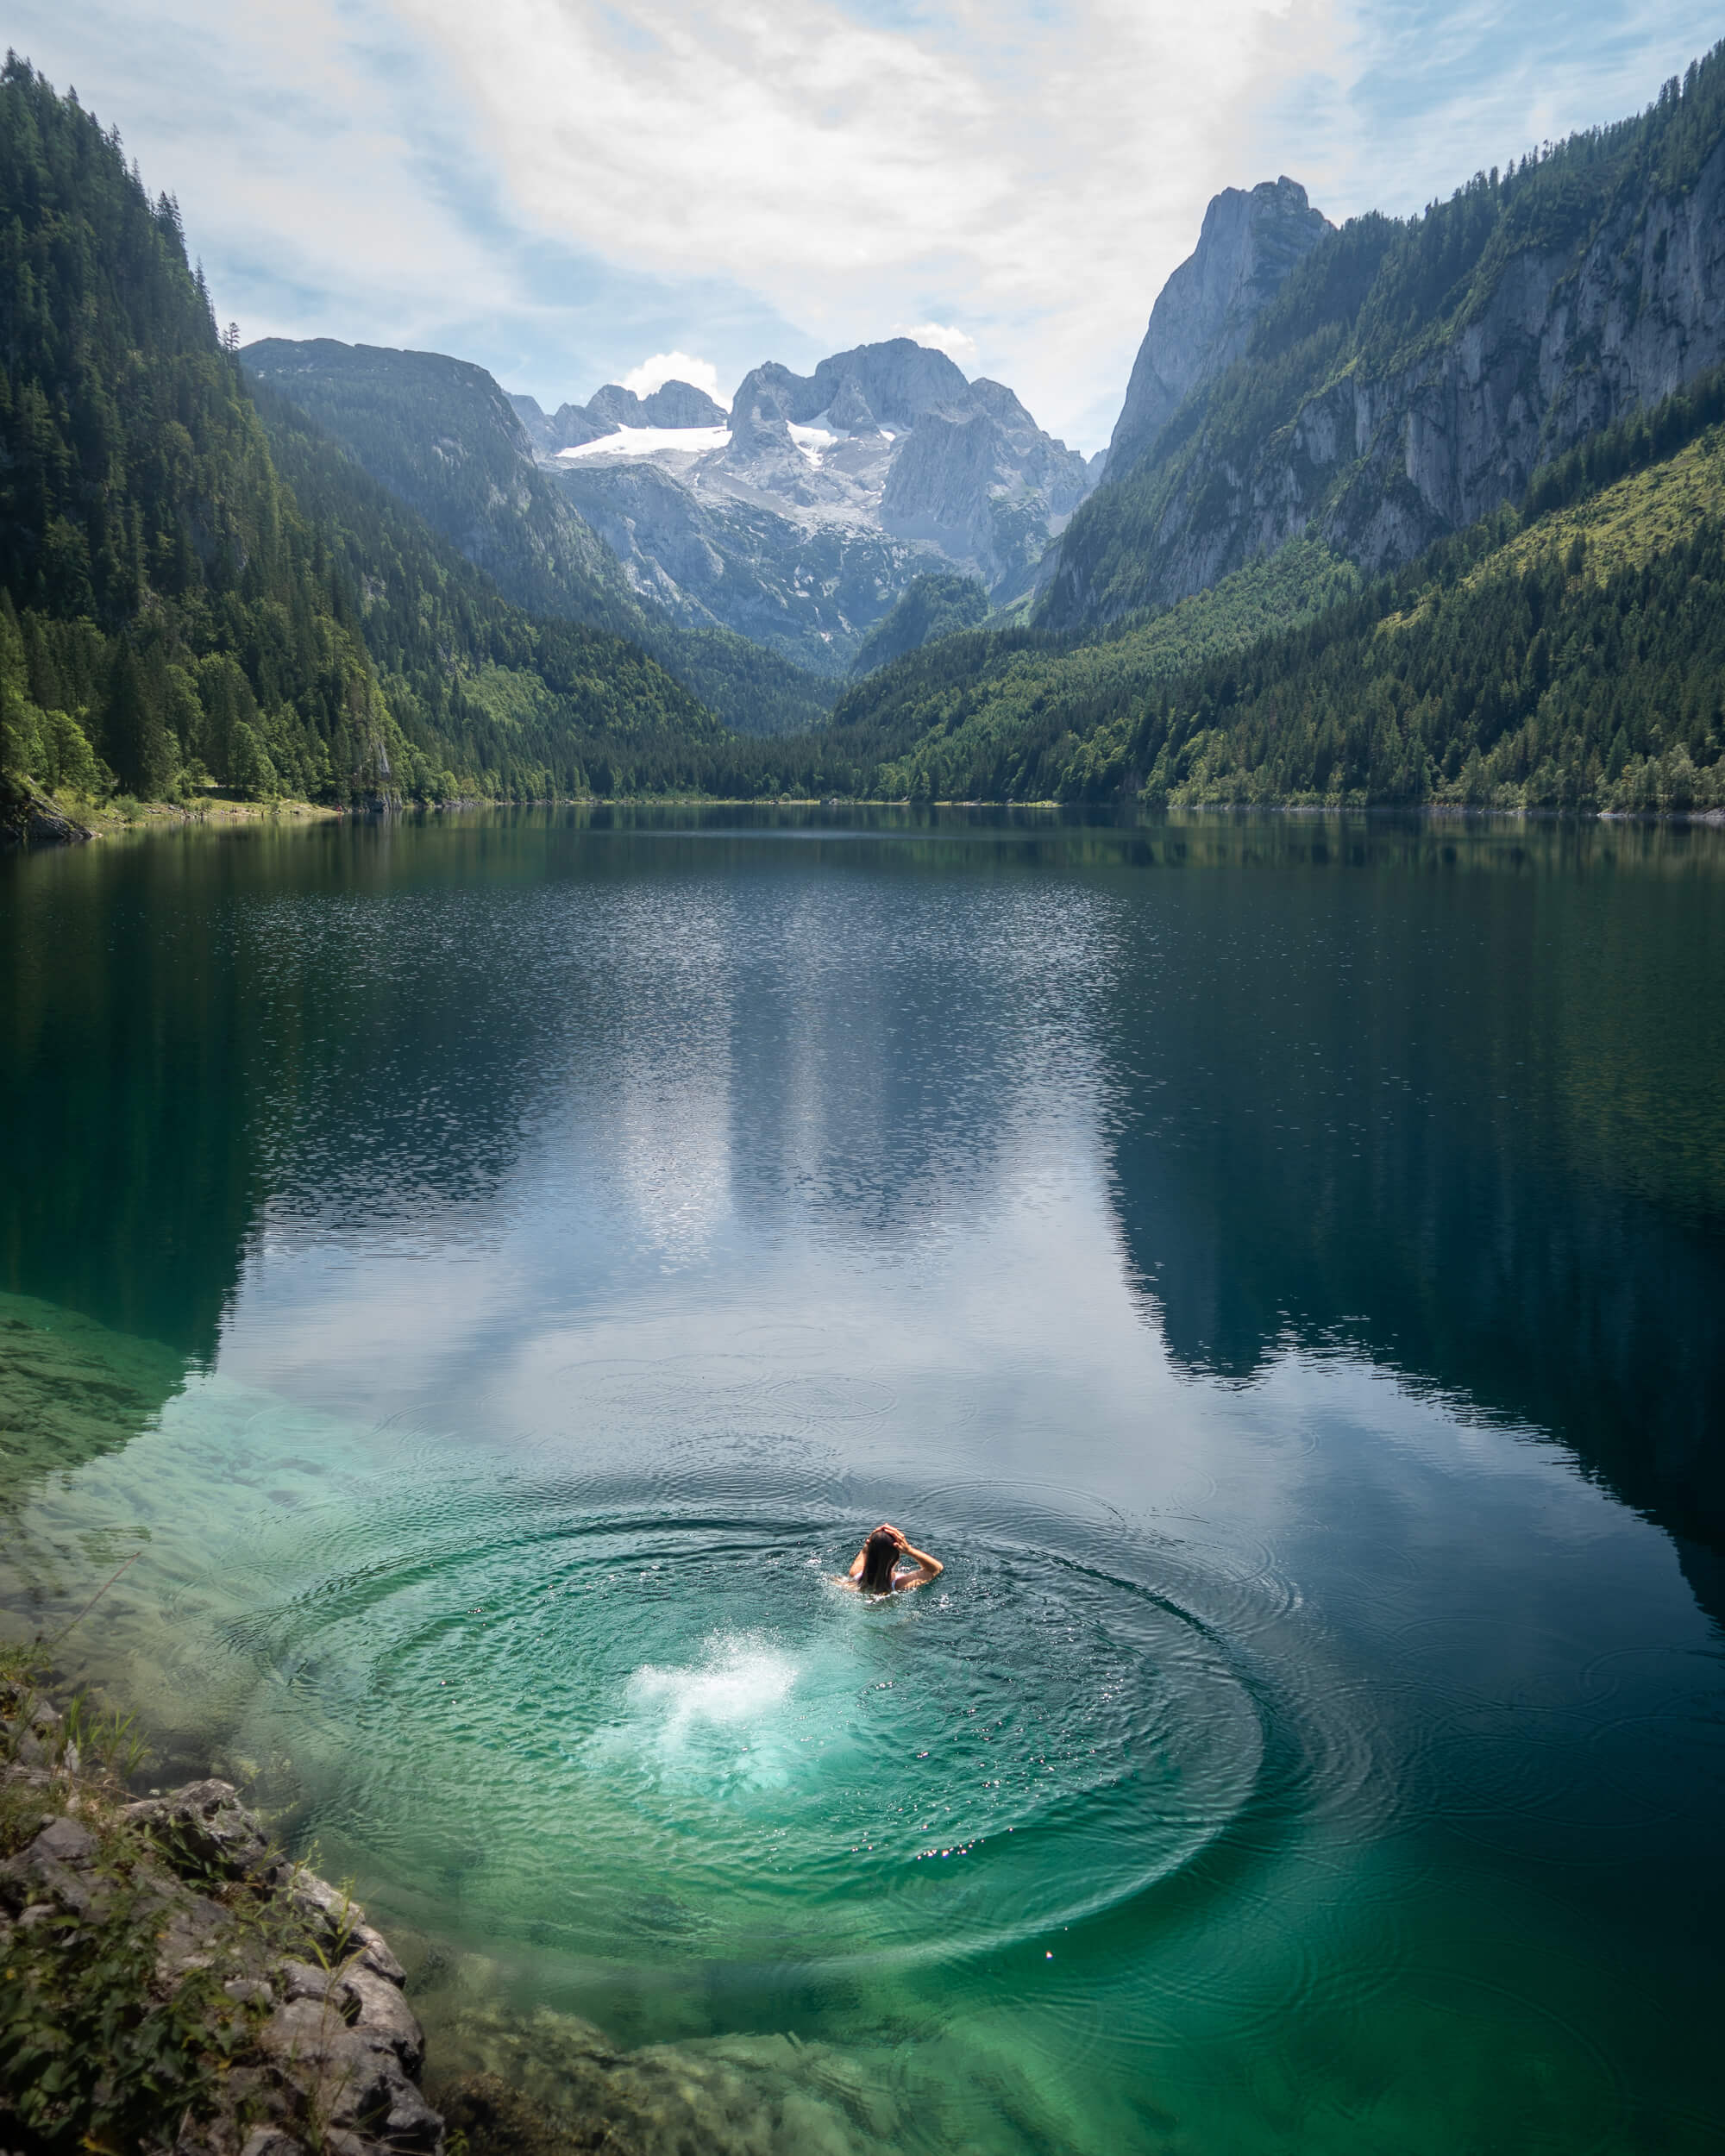 Cooling off in Lake Gosau after completing the via ferrata.